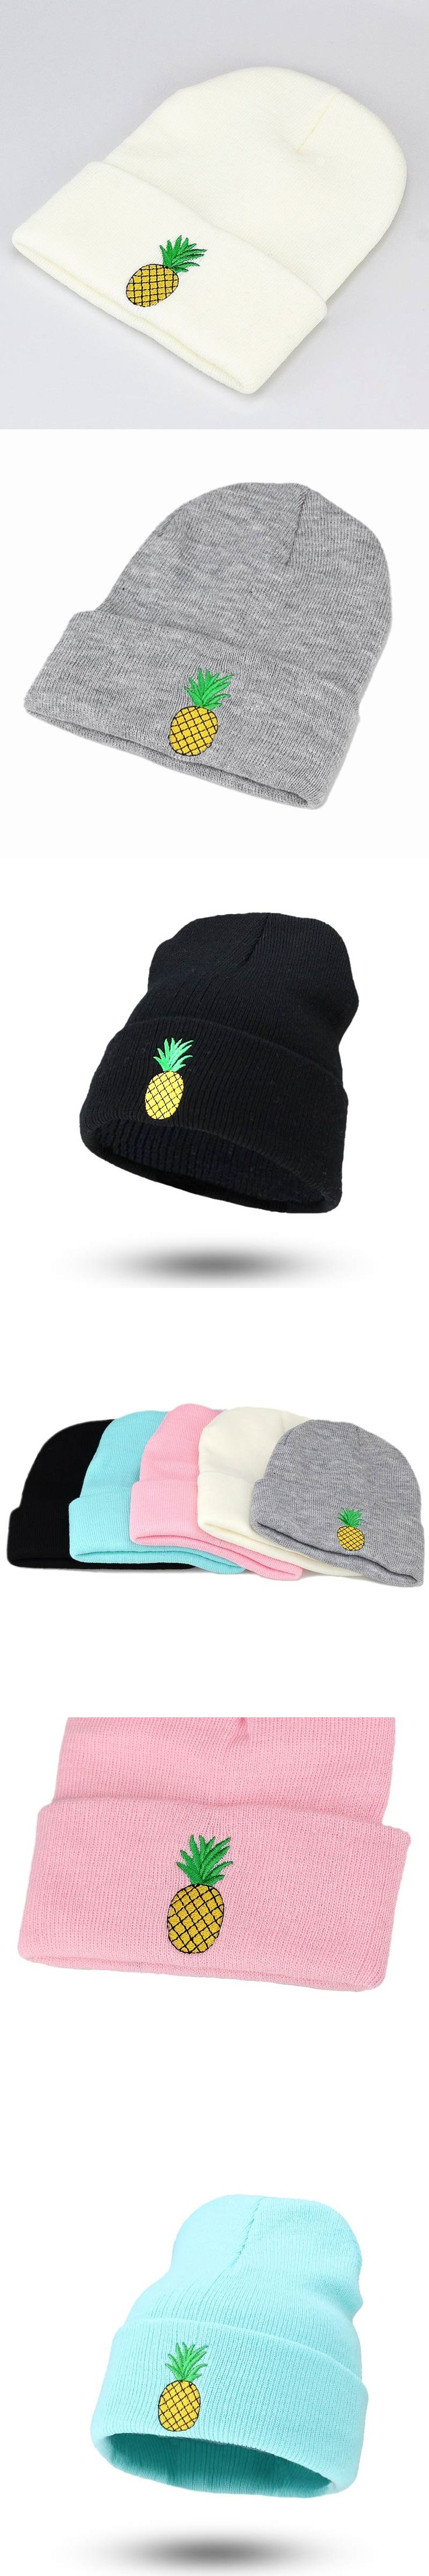 2017 Brand new autumn and winter pineapple embroidery men and women hat knitted warm cap fashion winter ladies wool hat